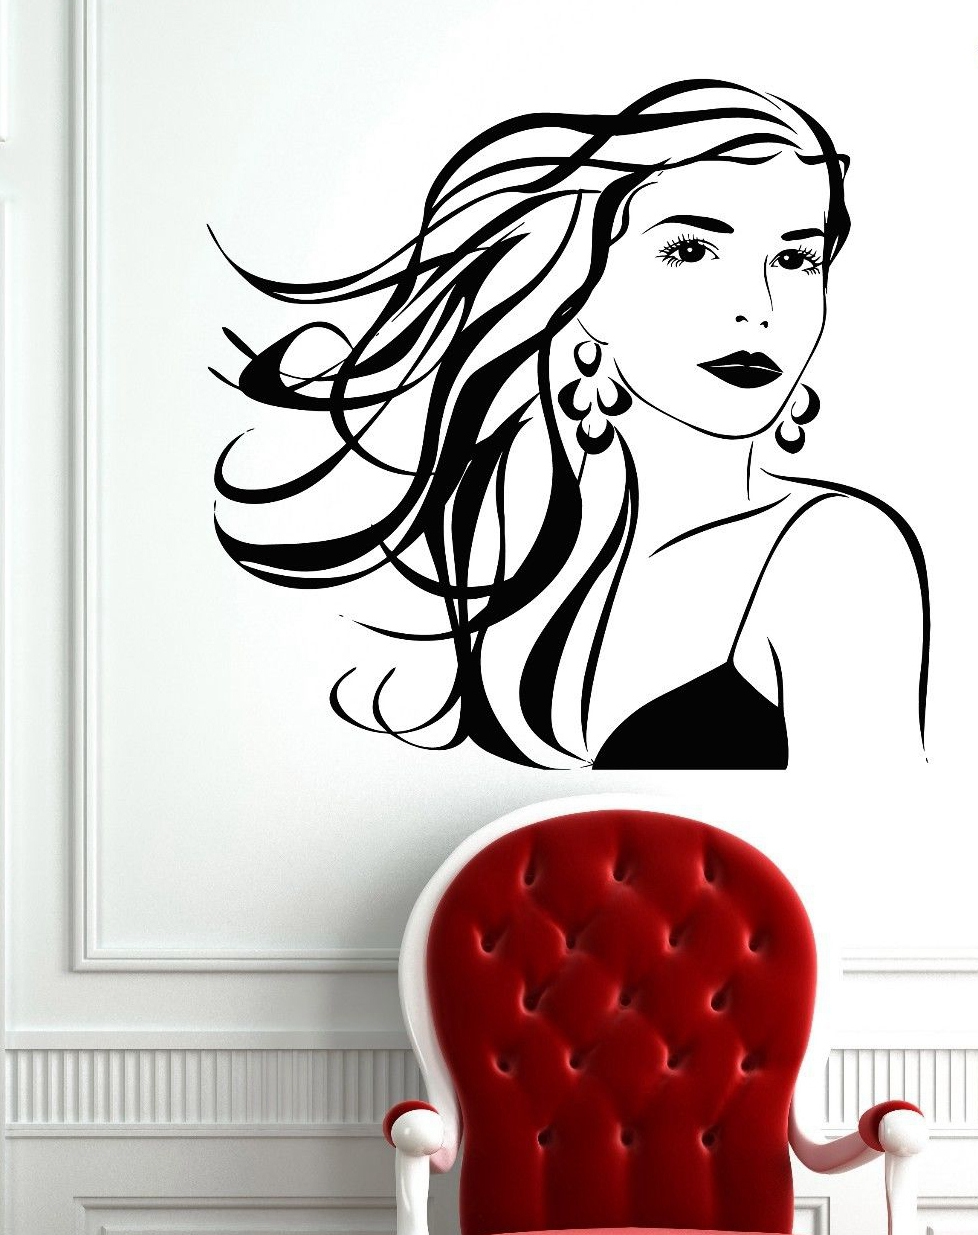 Cheap Hair Salon Posters Find Hair Salon Posters Deals On Line At